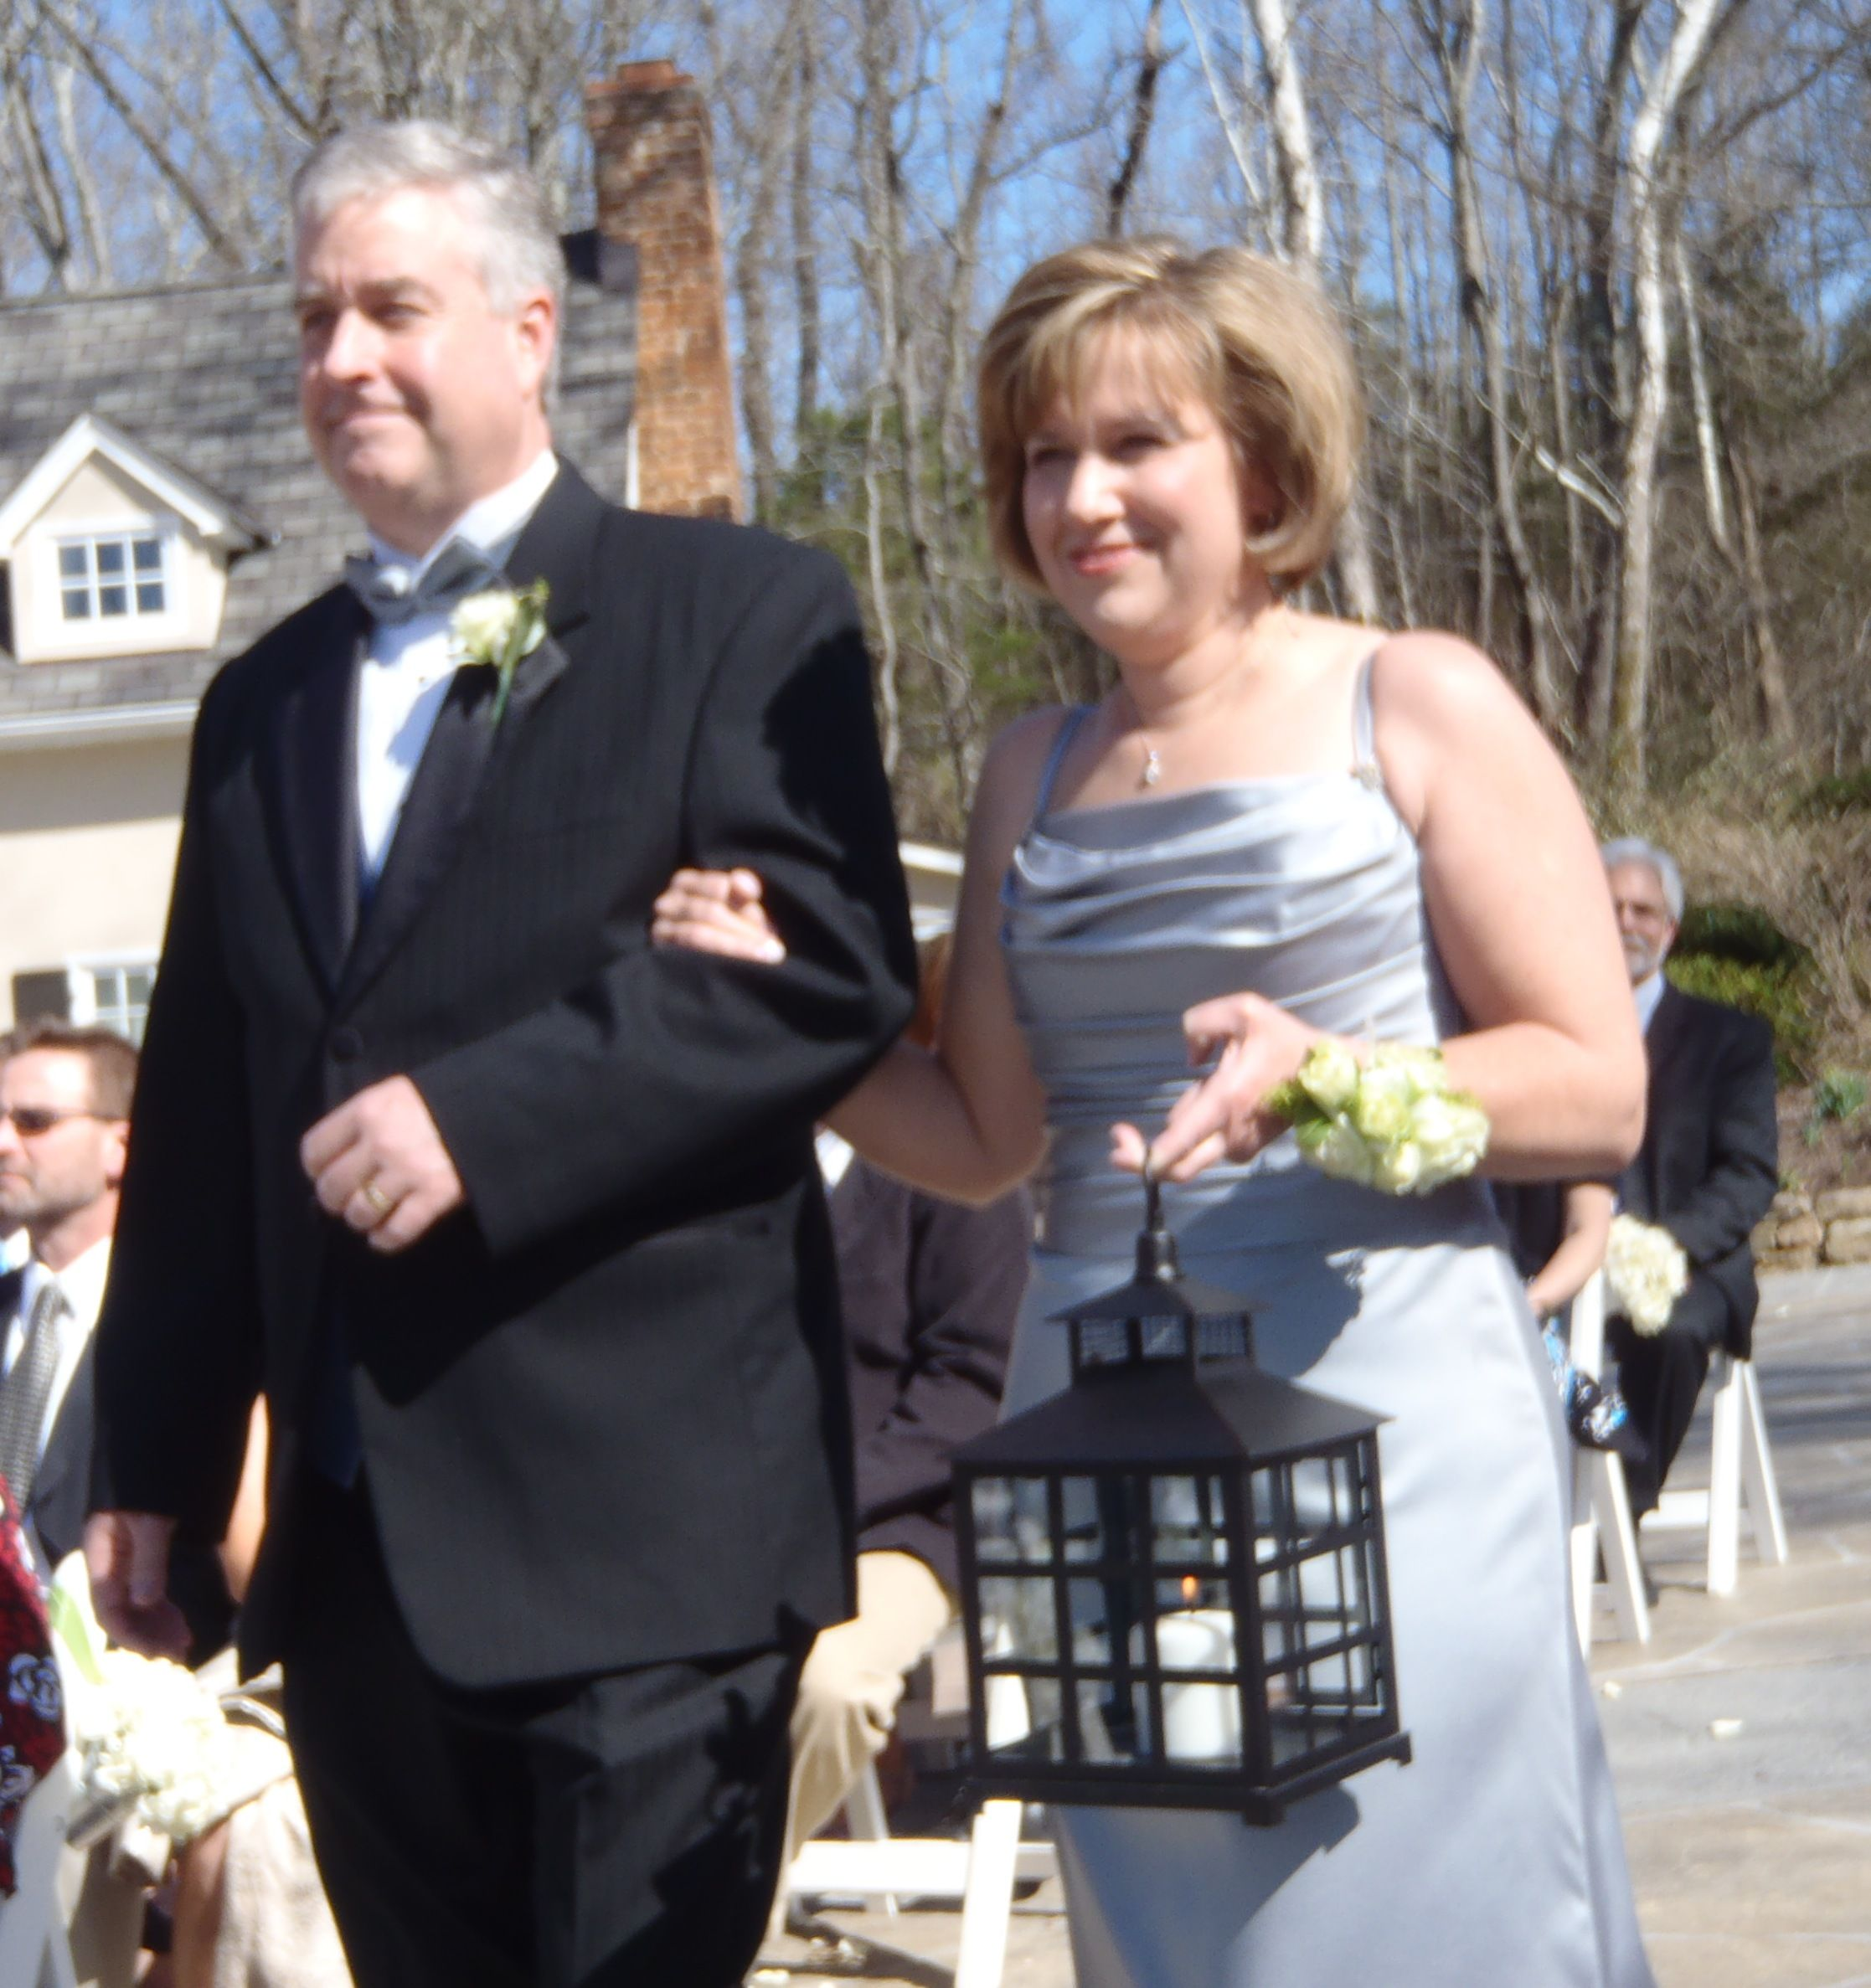 Unity Lantern carried by Mother-of-the-Bride